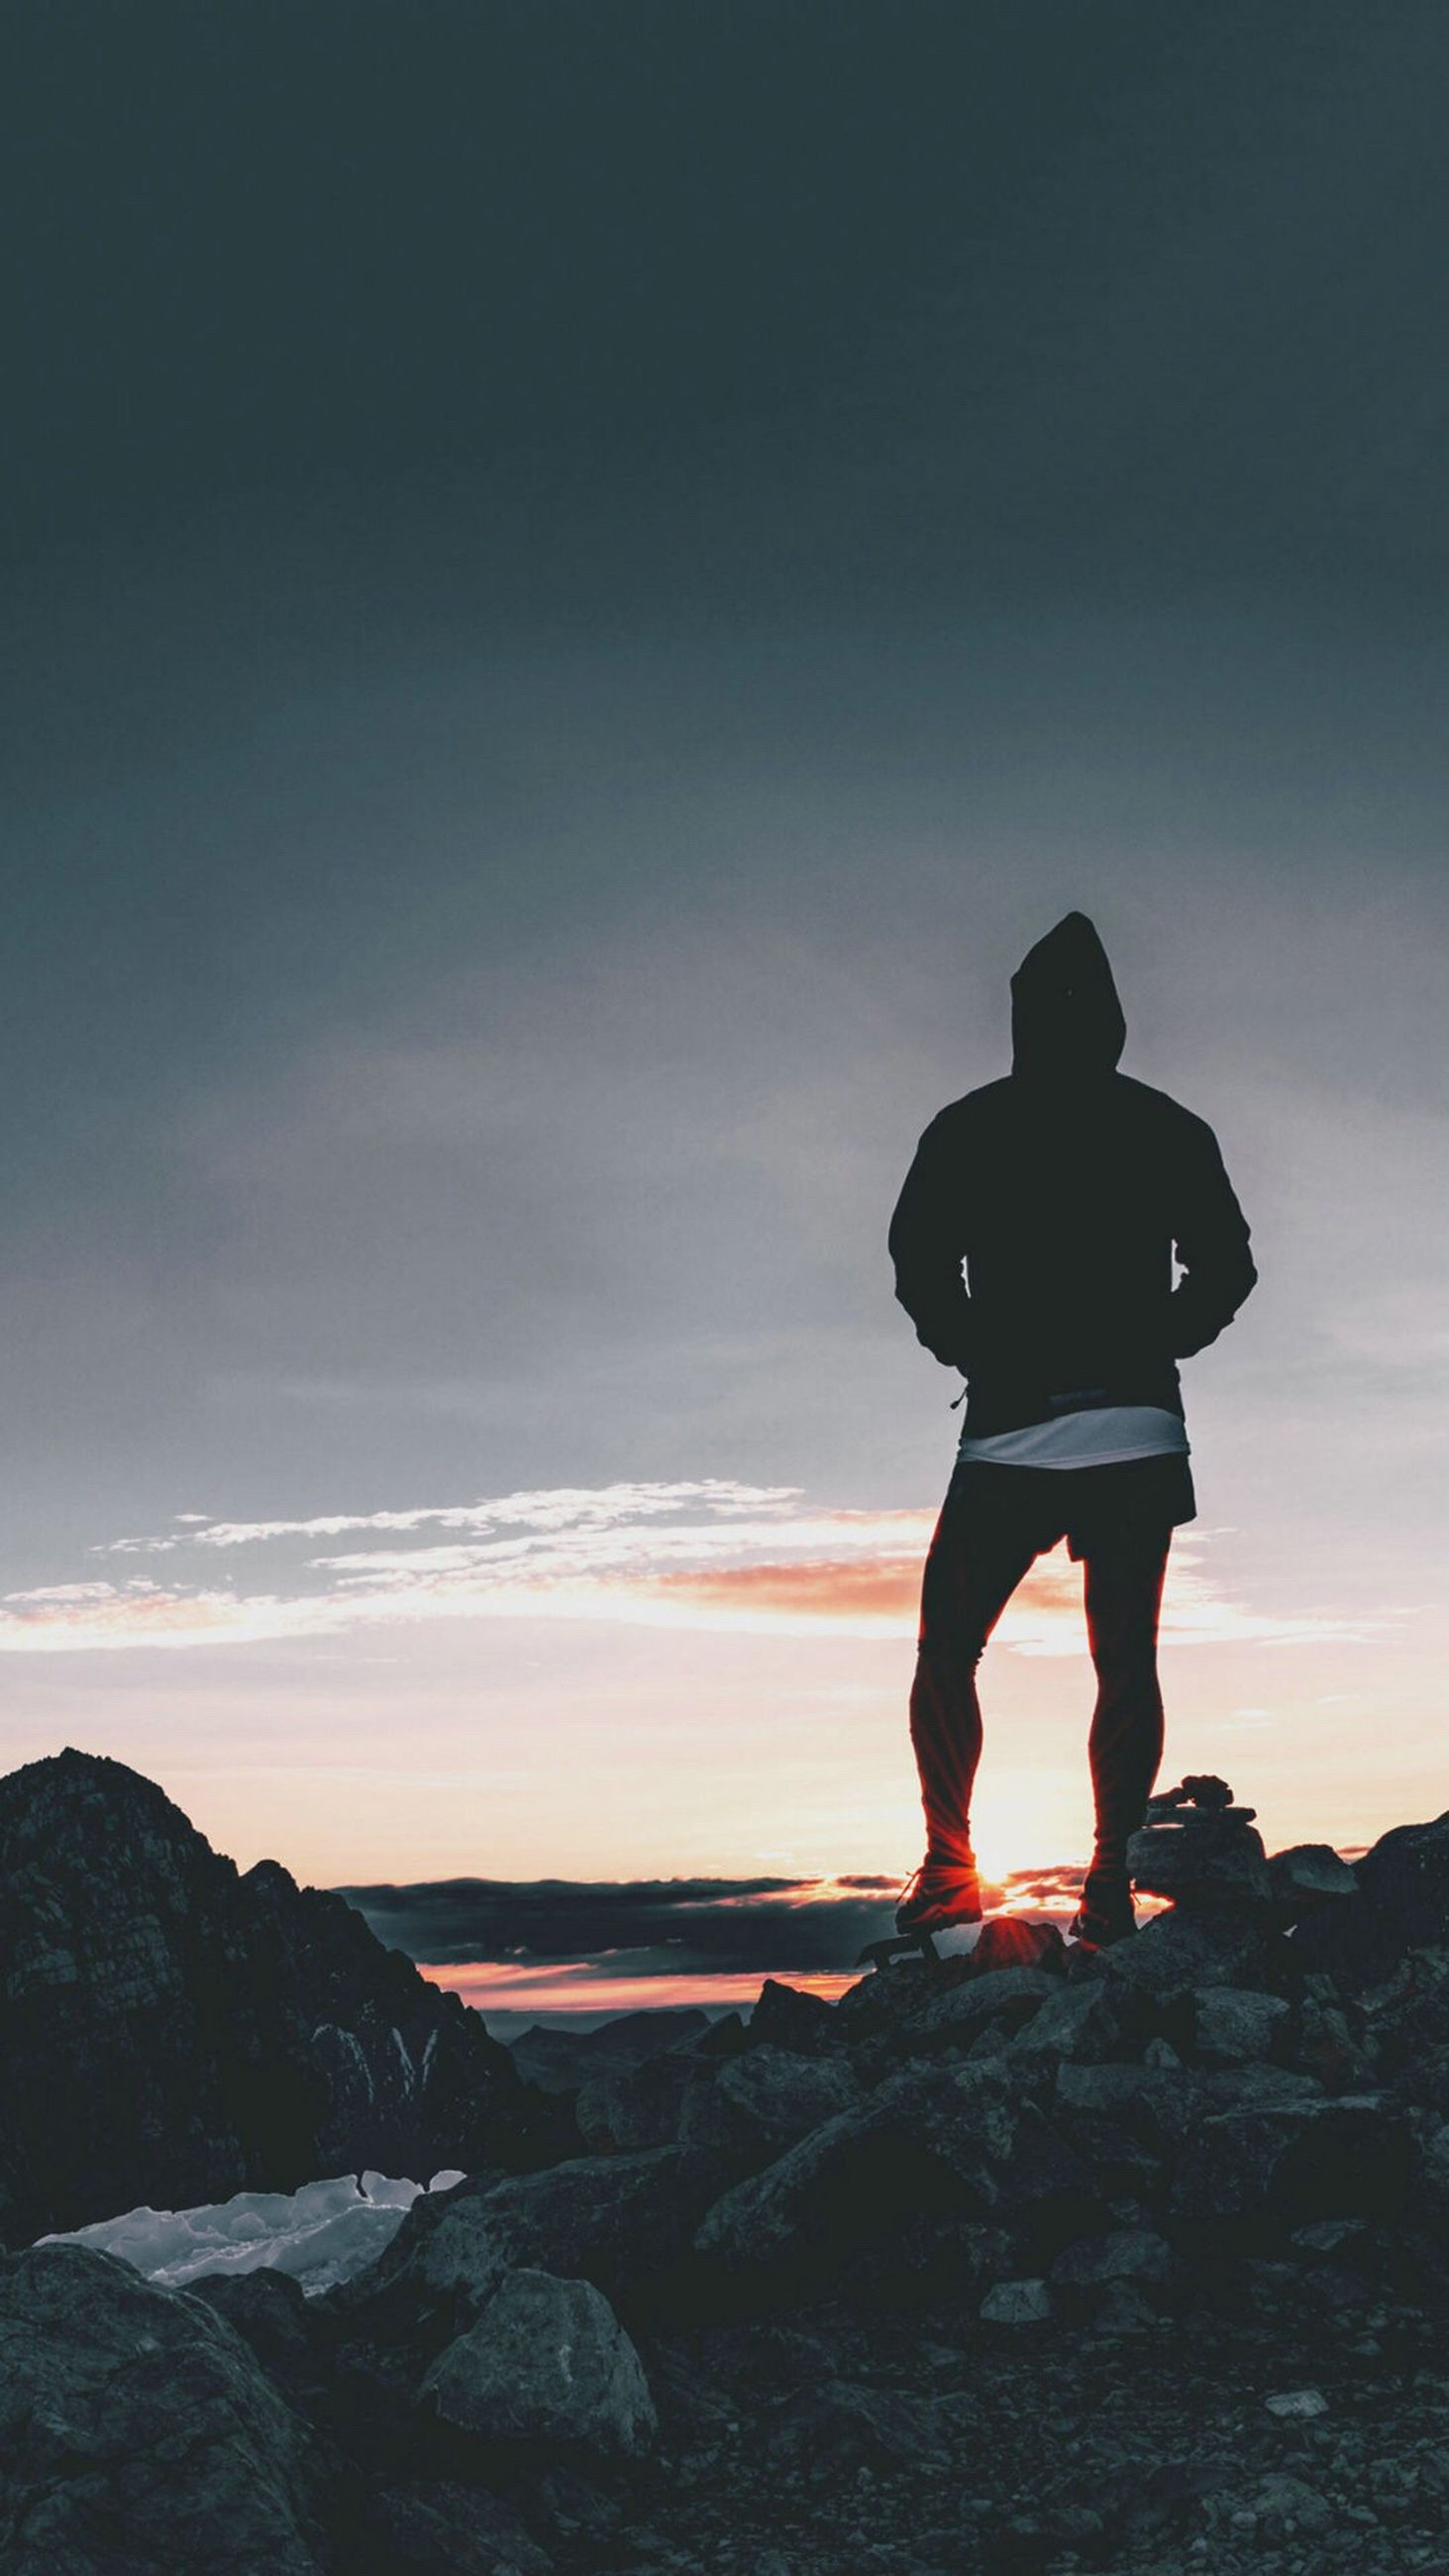 full length, lifestyles, leisure activity, standing, silhouette, sky, men, rear view, sunset, rock - object, tranquil scene, person, tranquility, scenics, nature, beauty in nature, landscape, casual clothing